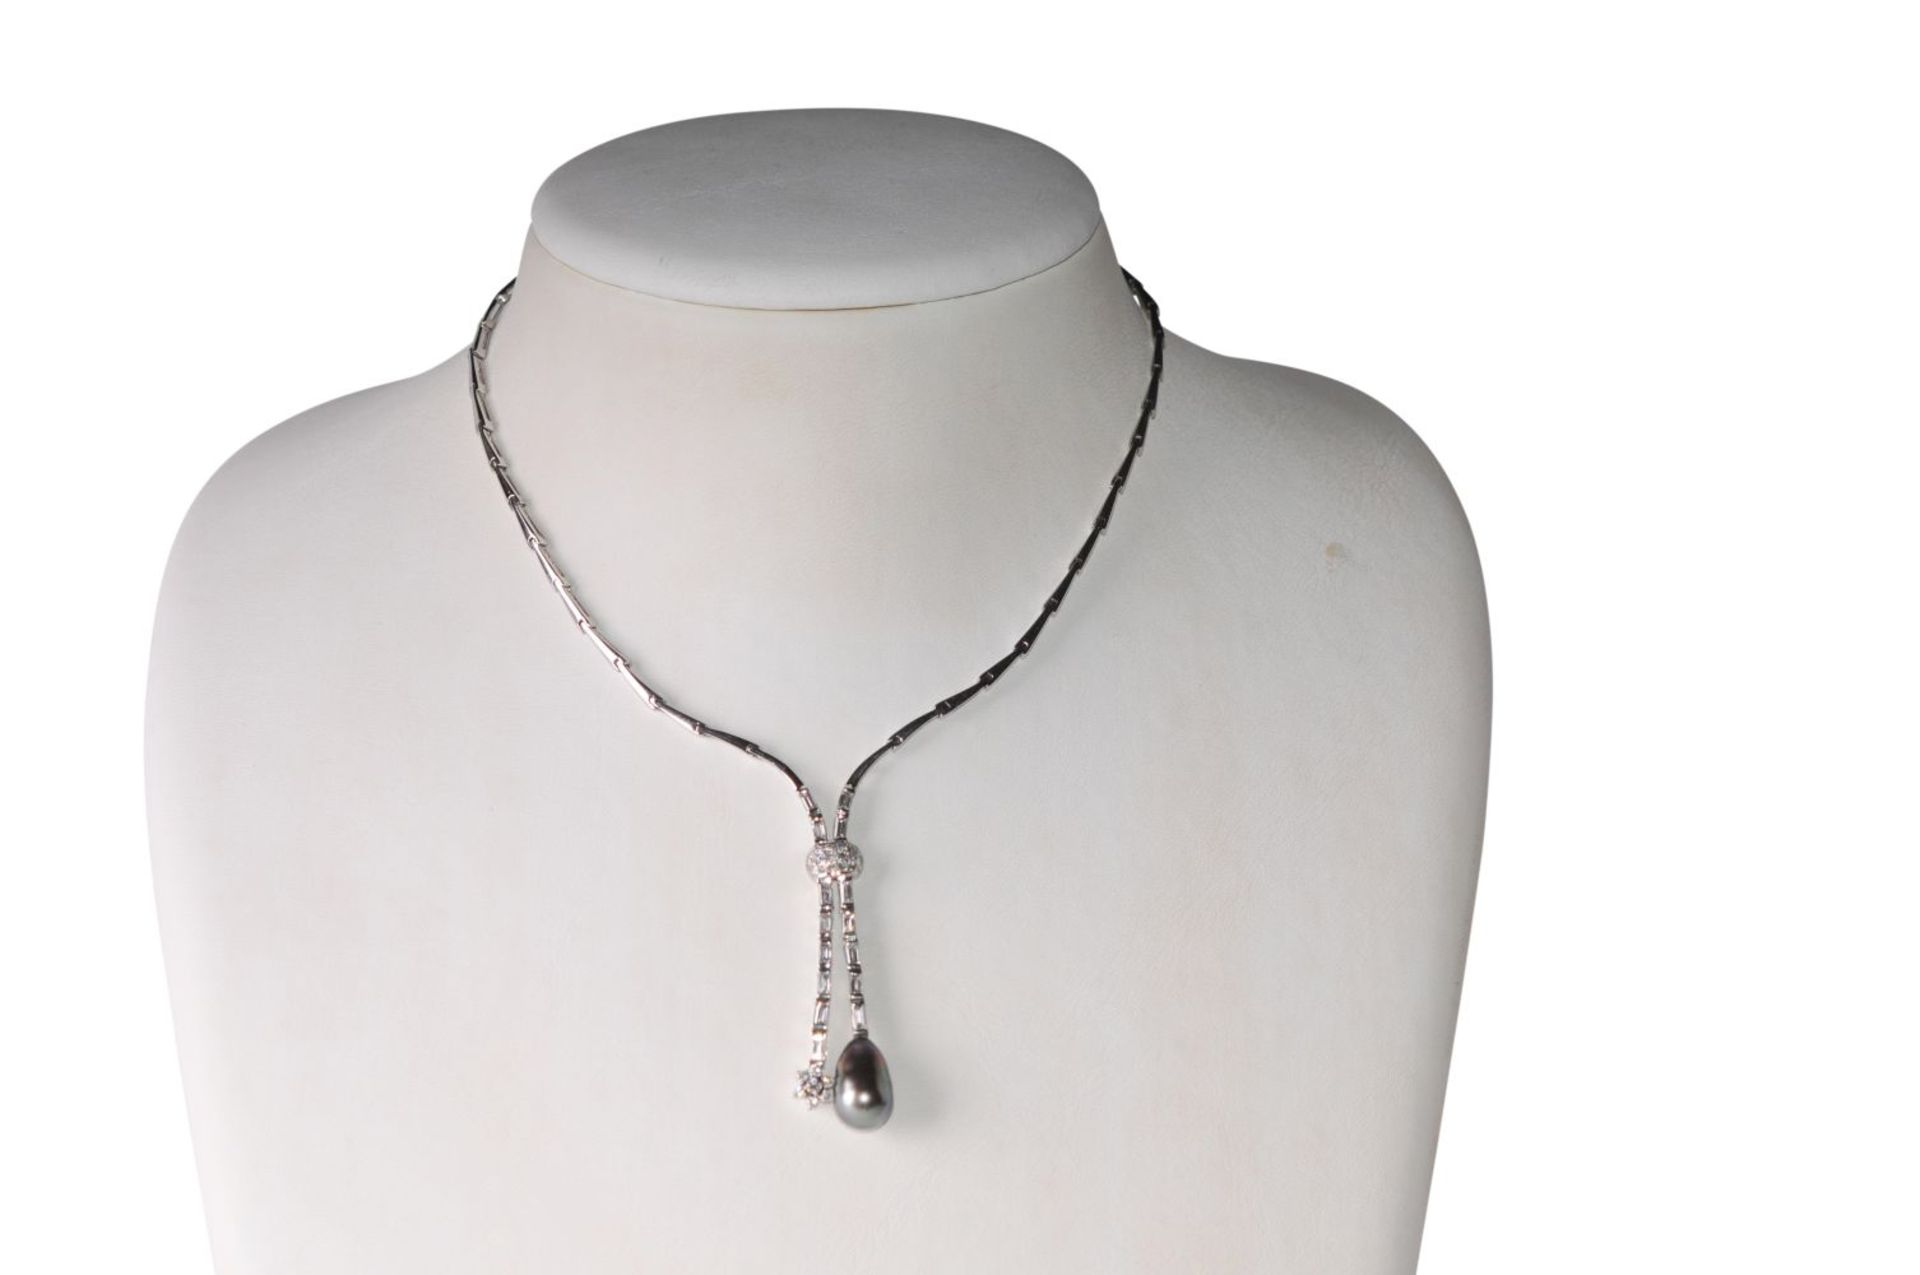 Los 112 - Diamond necklace18Kt white gold necklace with brillants and diamonds total carat weight approx. 1.